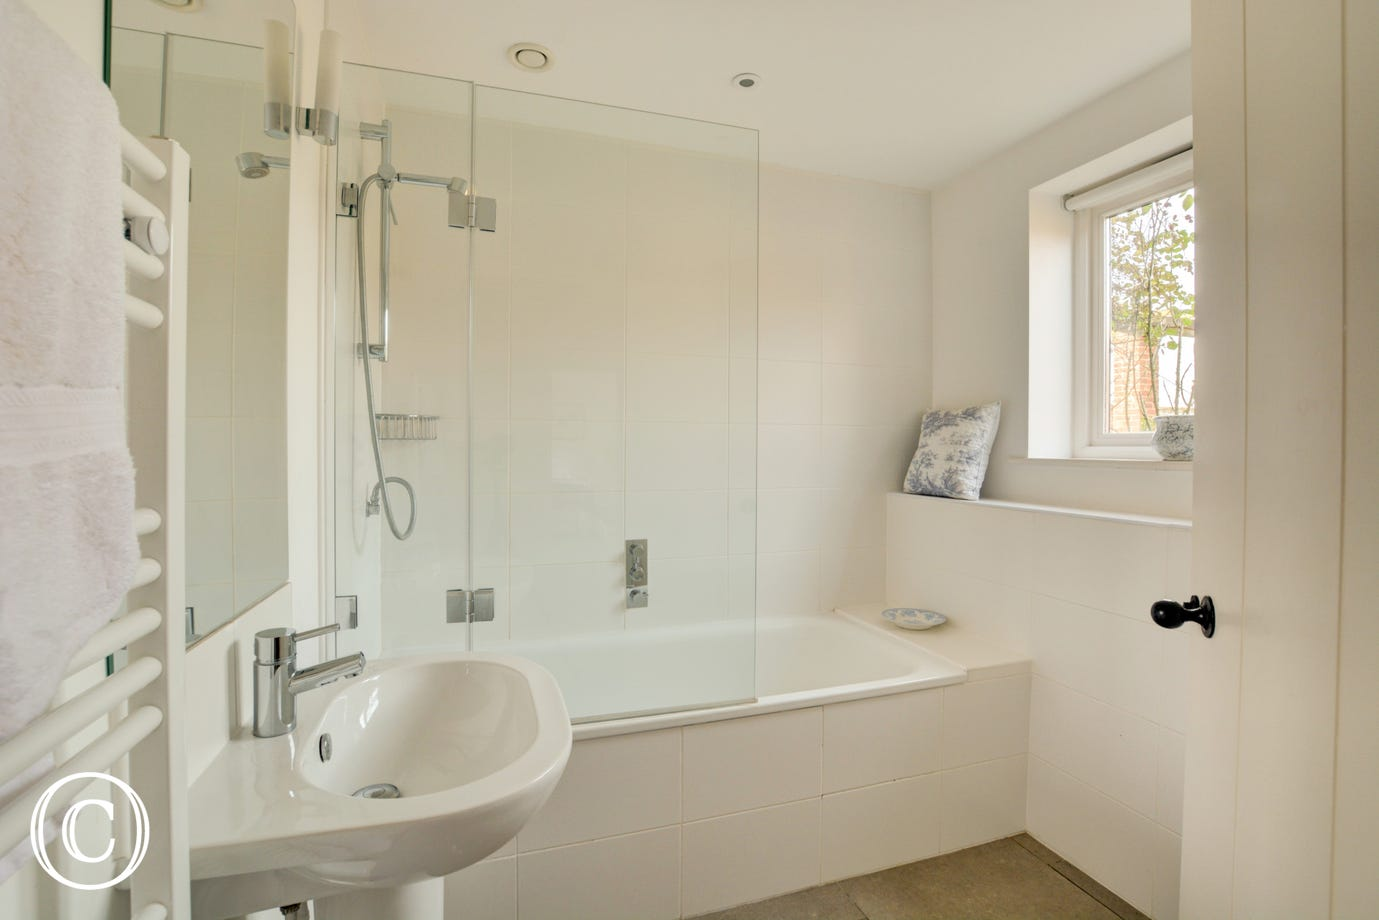 Comprising of a bath, over bath shower, wc and washbasin